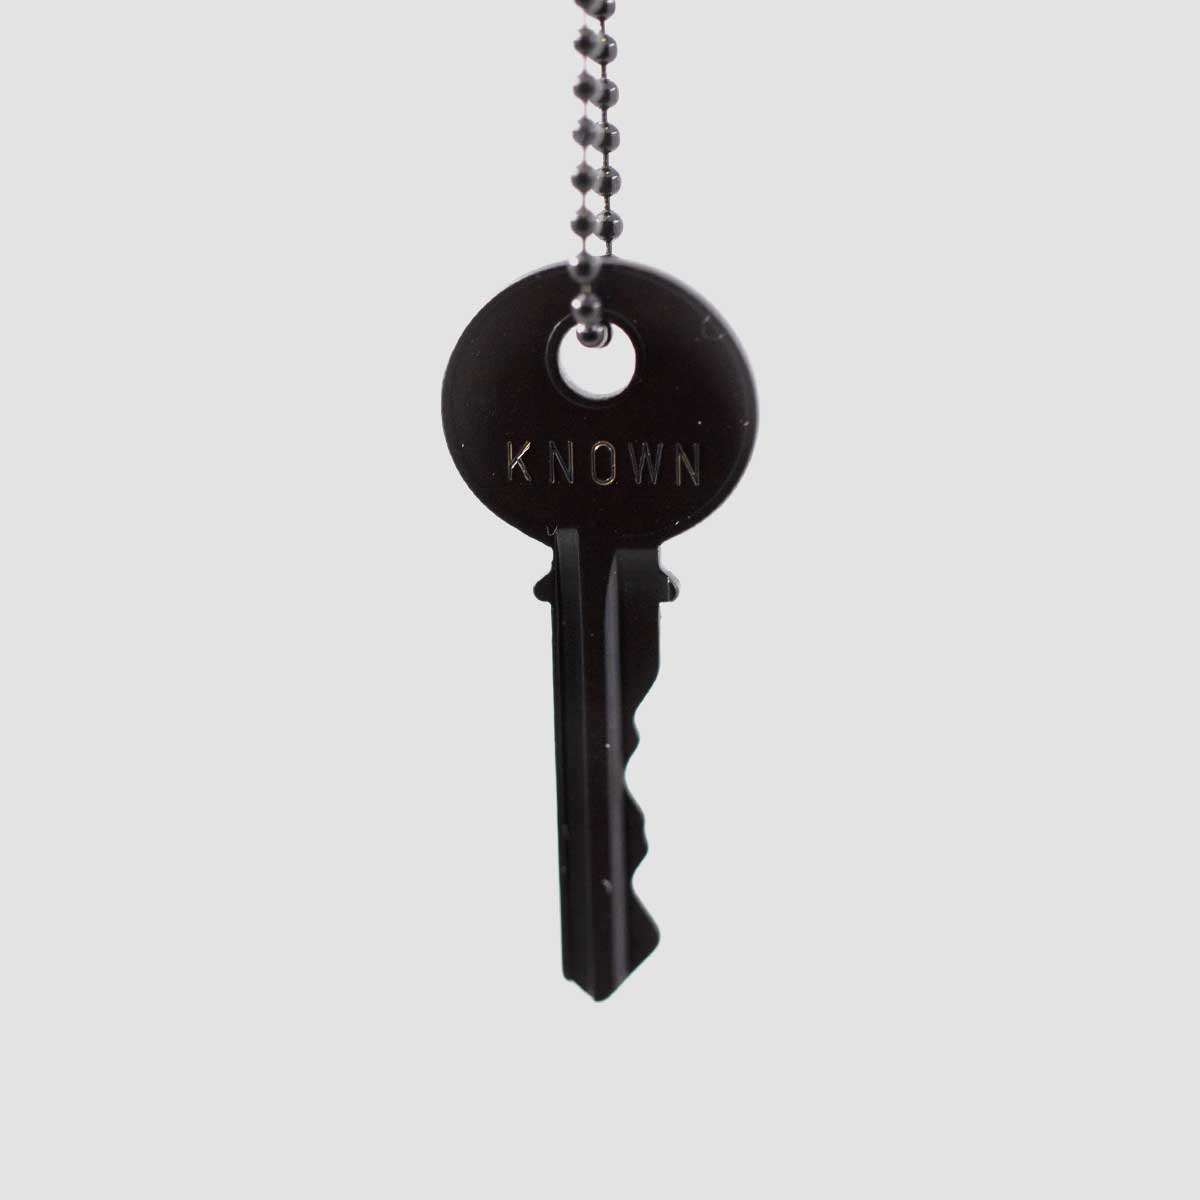 Known Key Necklace